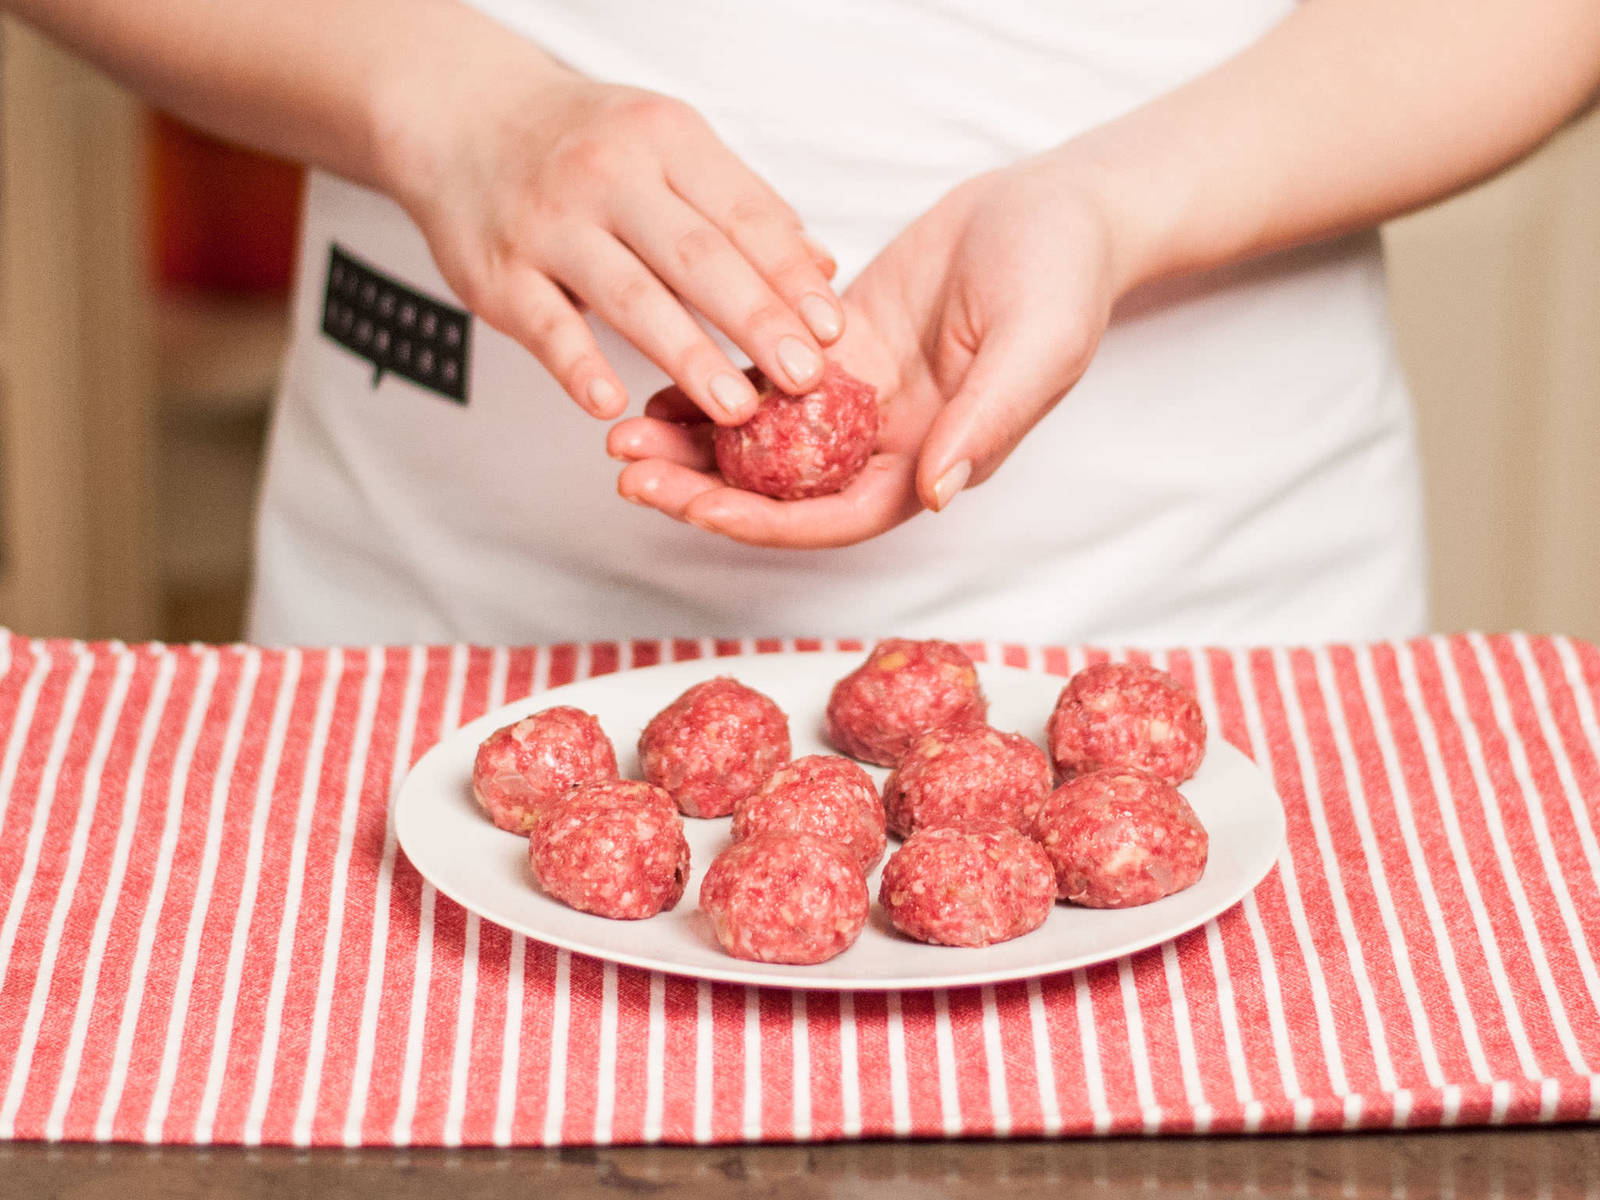 Form beef mixture into balls (approx. 3 cm), place on a plate, cover, and cool for approx. 20 – 30 min.